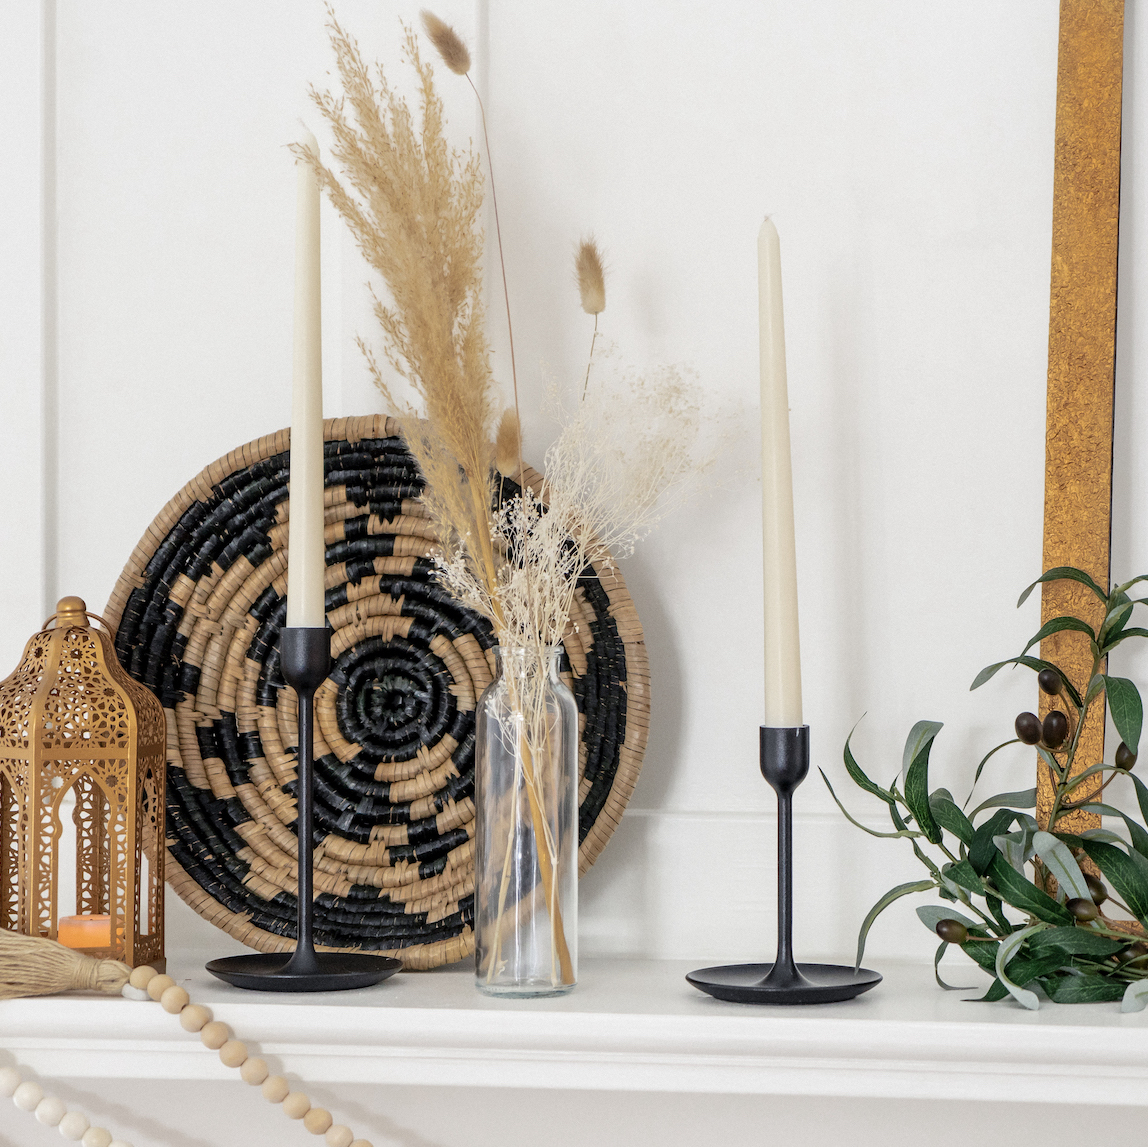 Mantle with wall baskets, Door Decor, and pampas vase